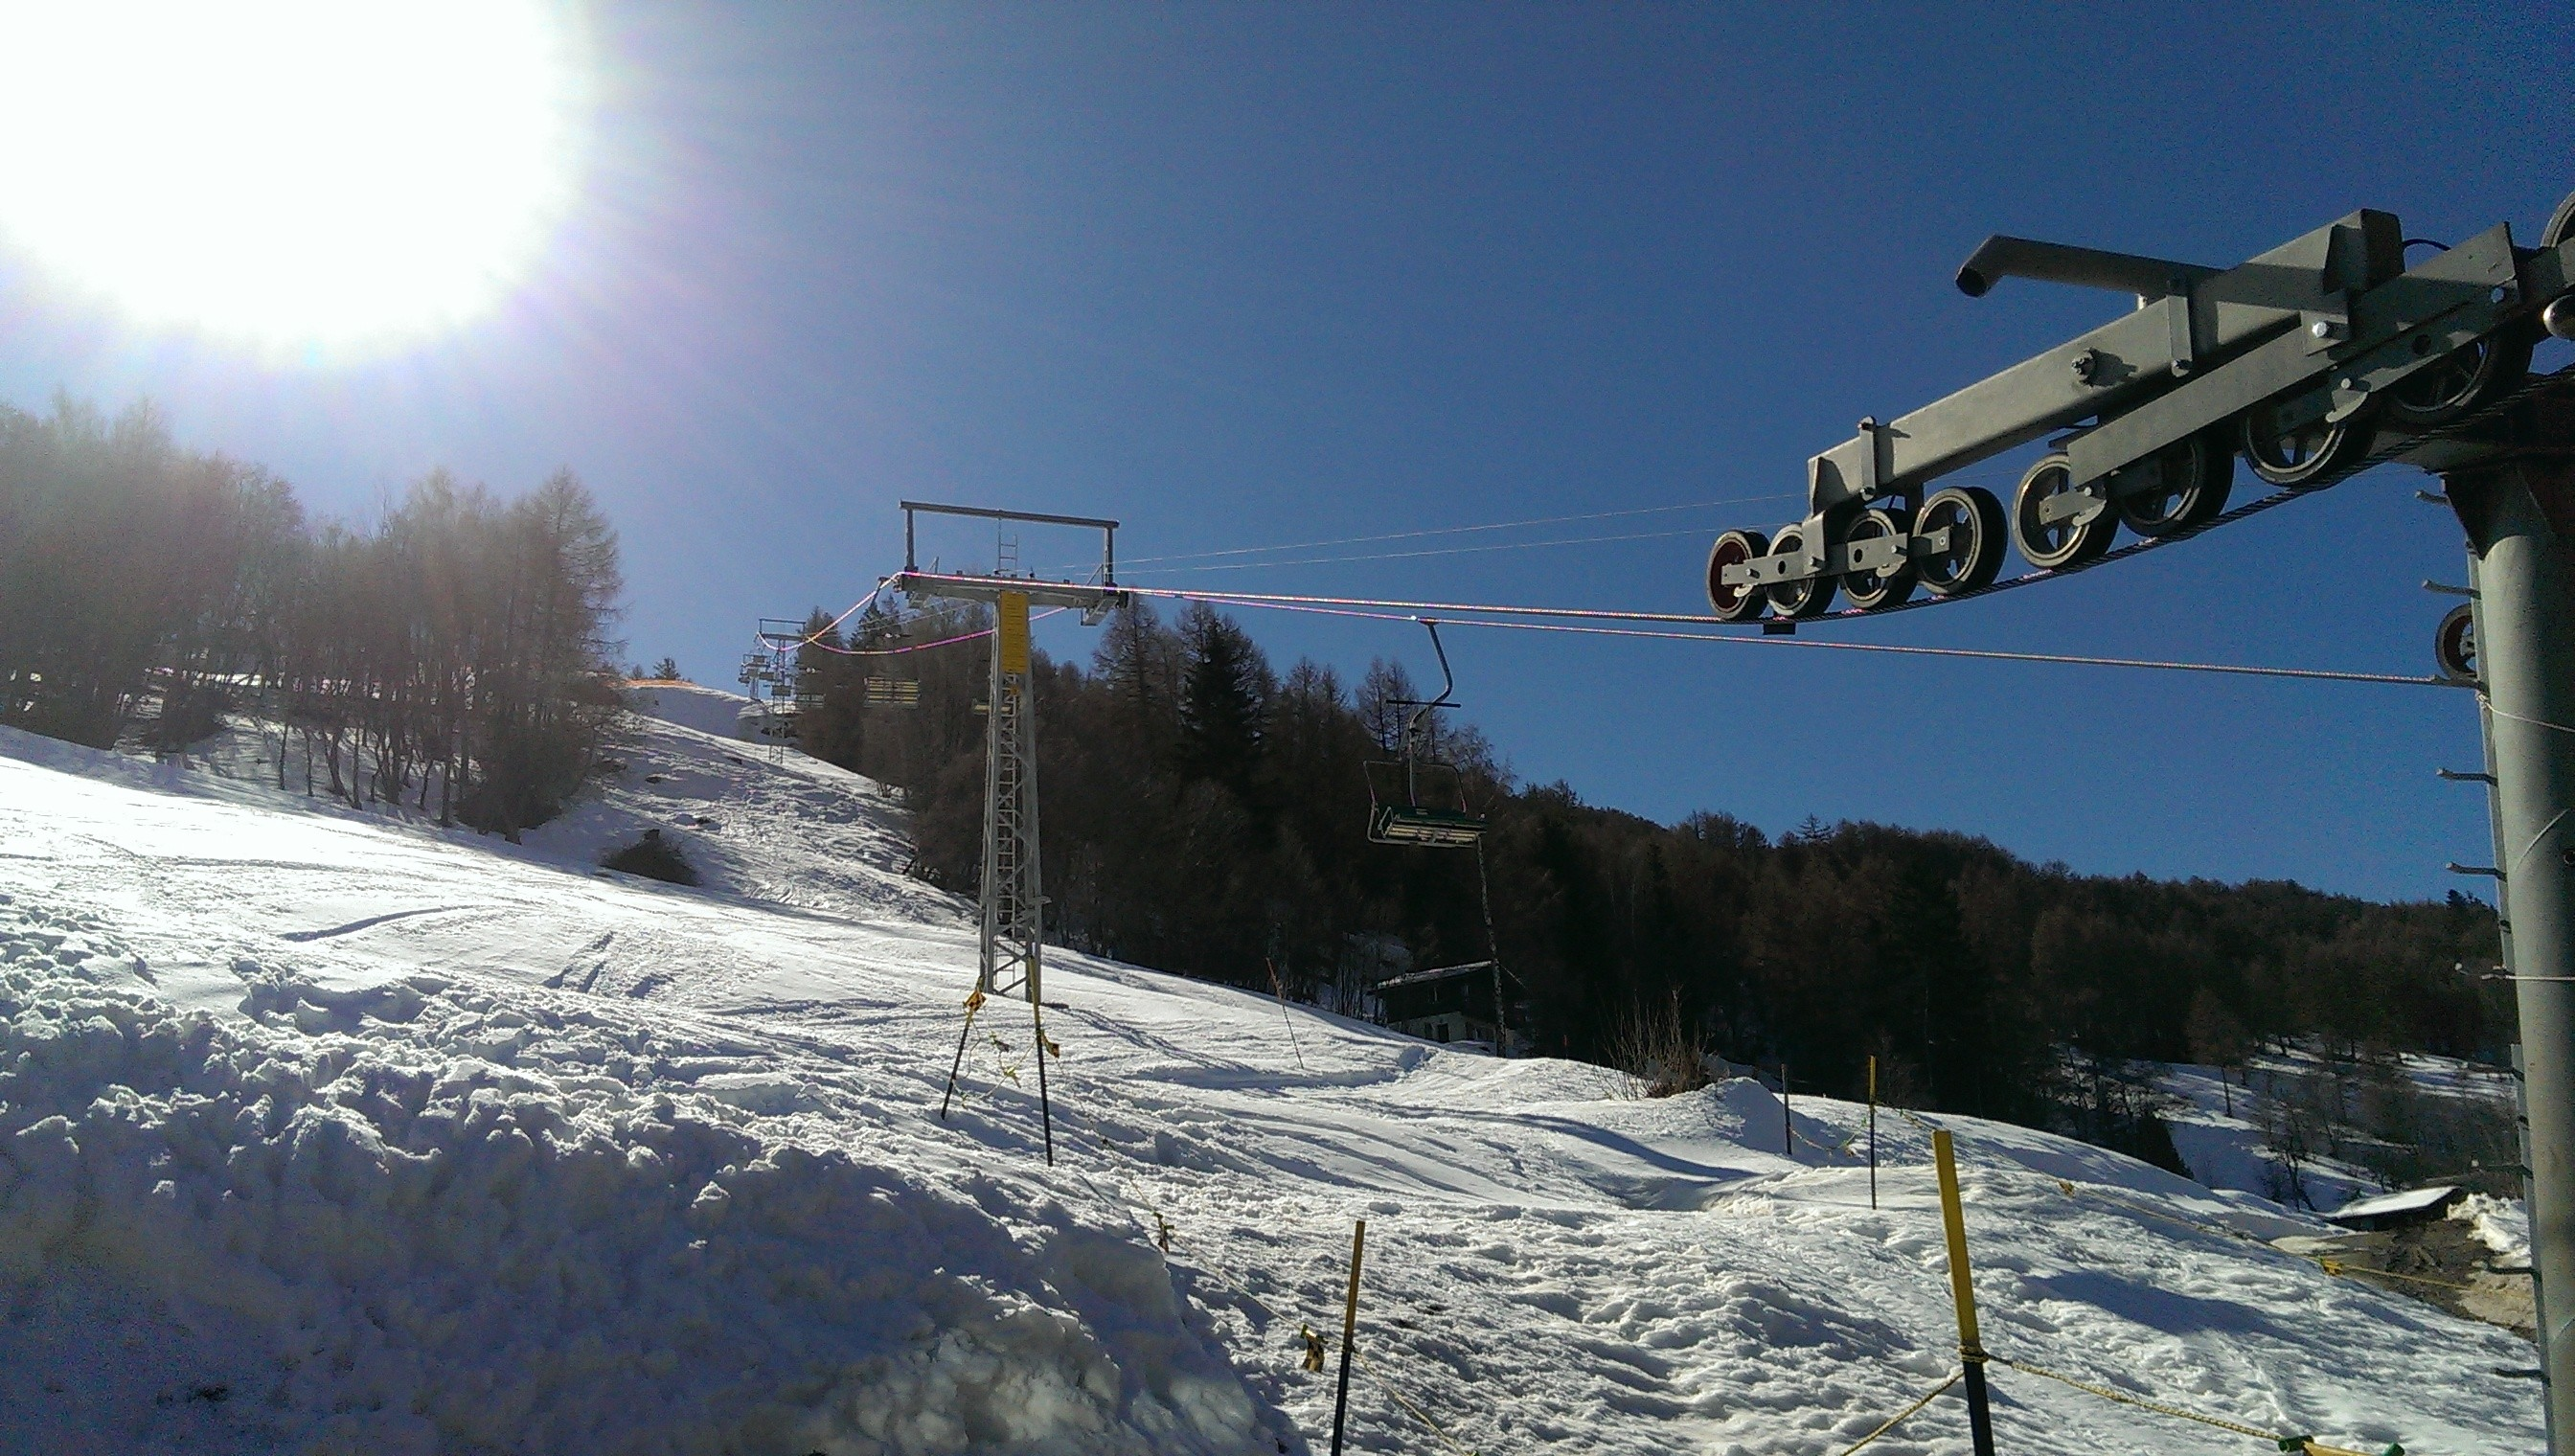 eischoll reviews - opinions and comments about the ski resort